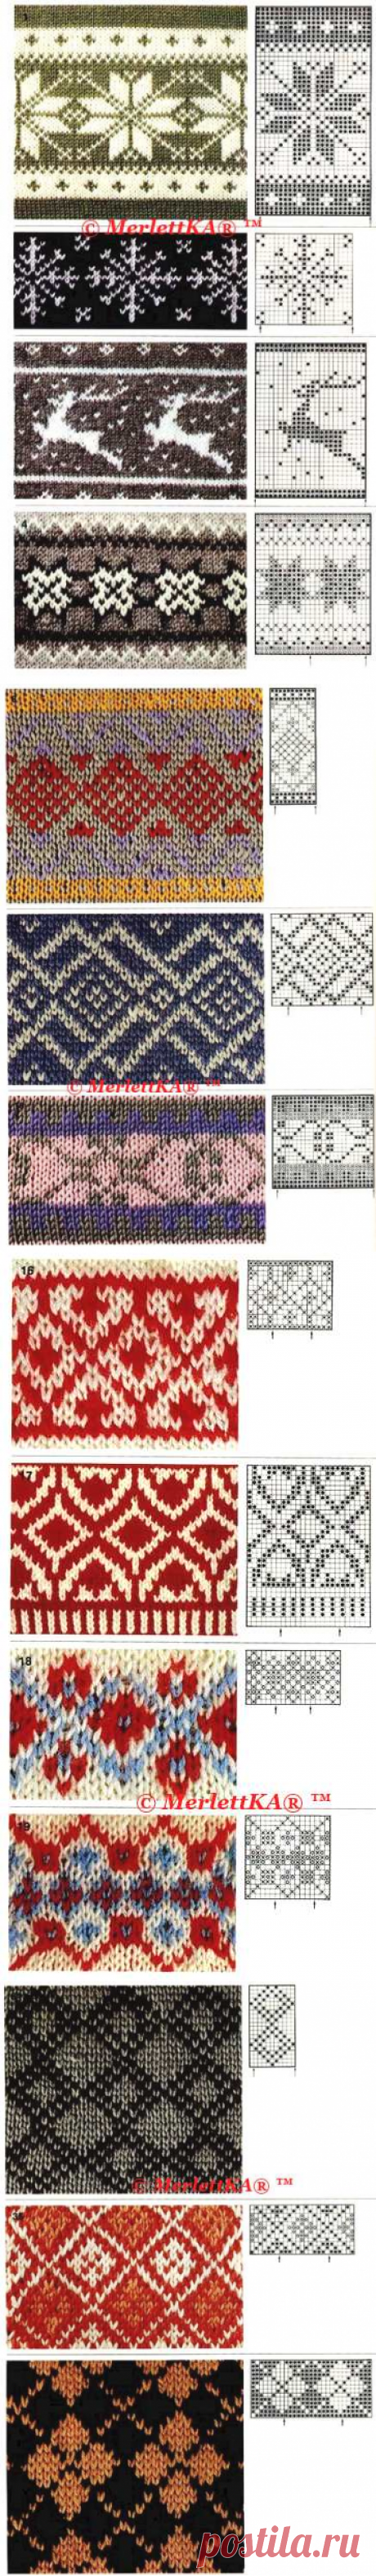 Jacquard is not much - for beads, knitting, weaving and a dot list